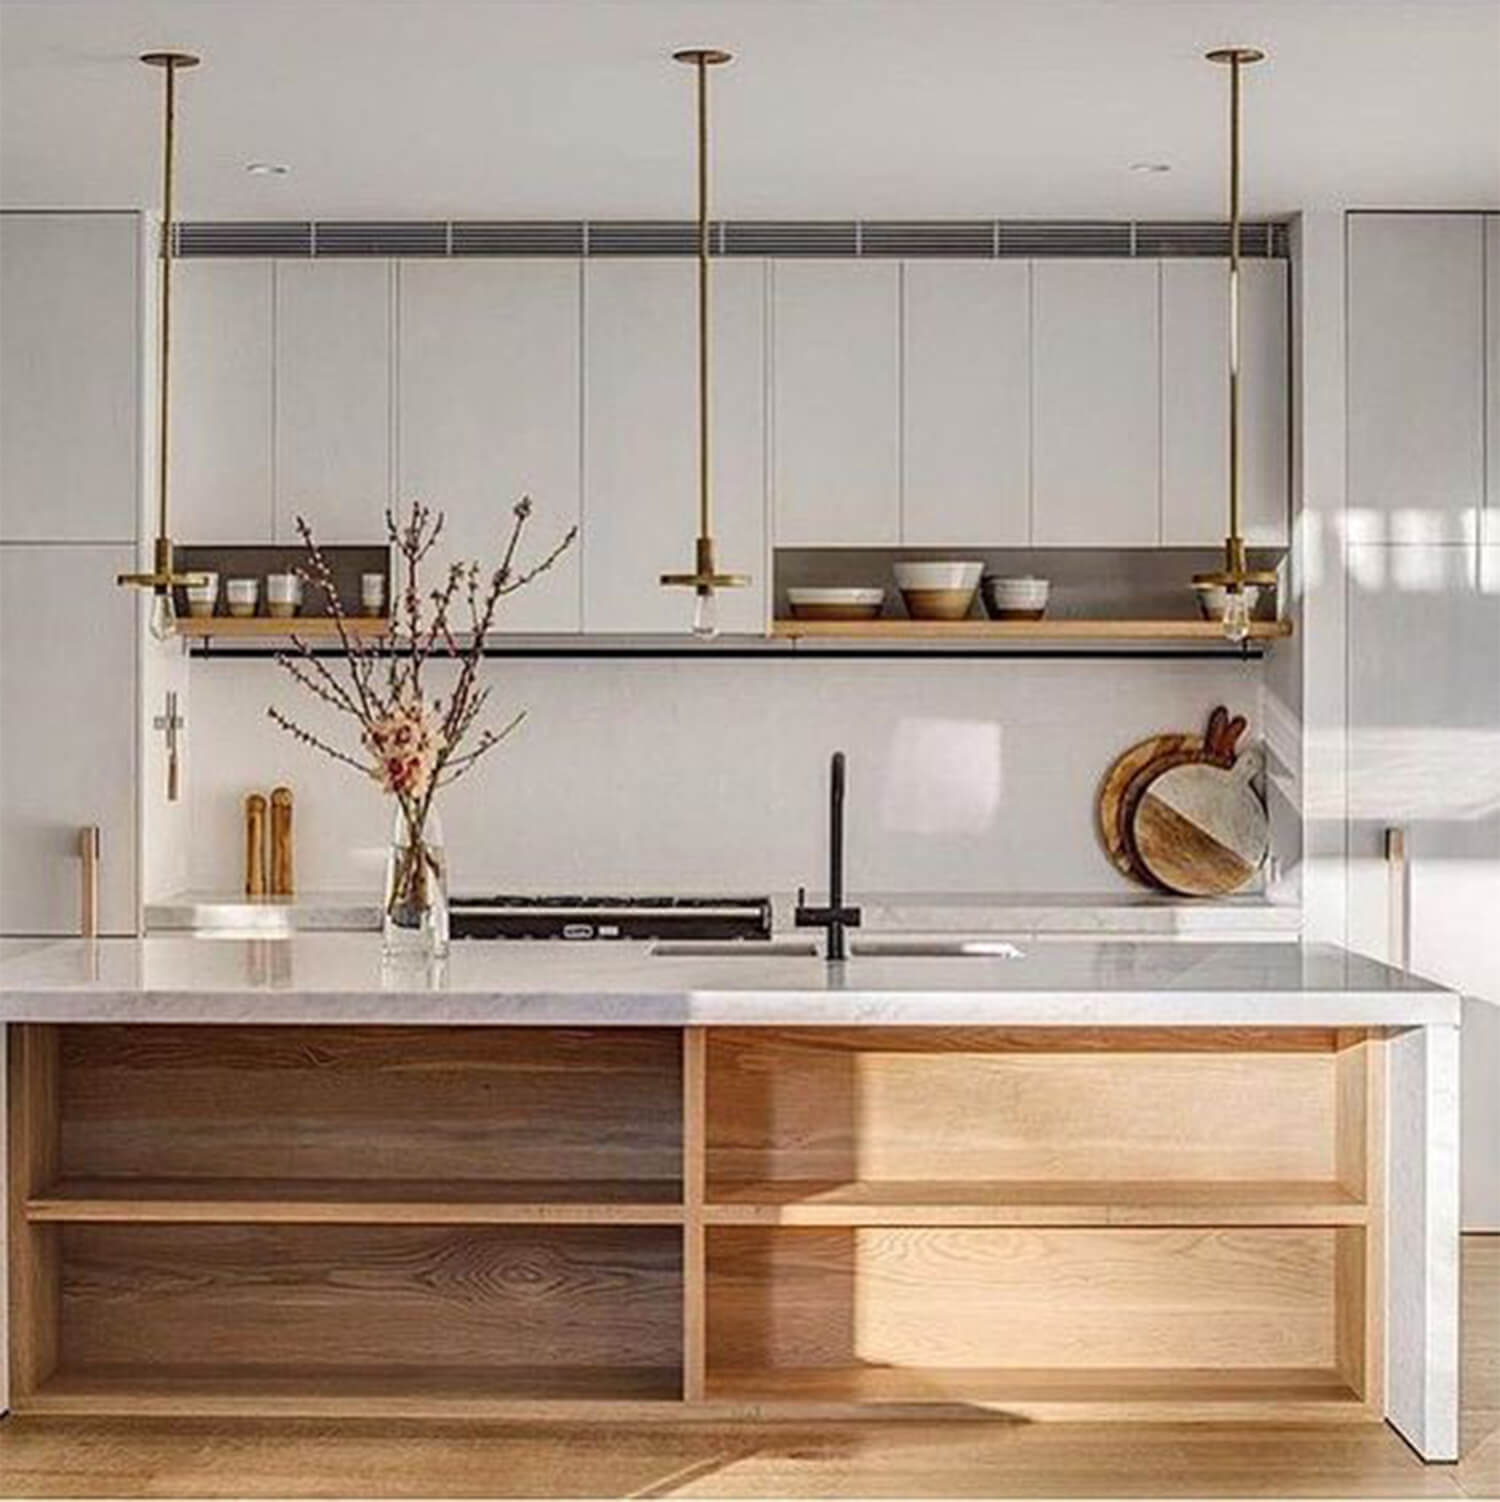 est living romy atwill kitchen timber kitchens